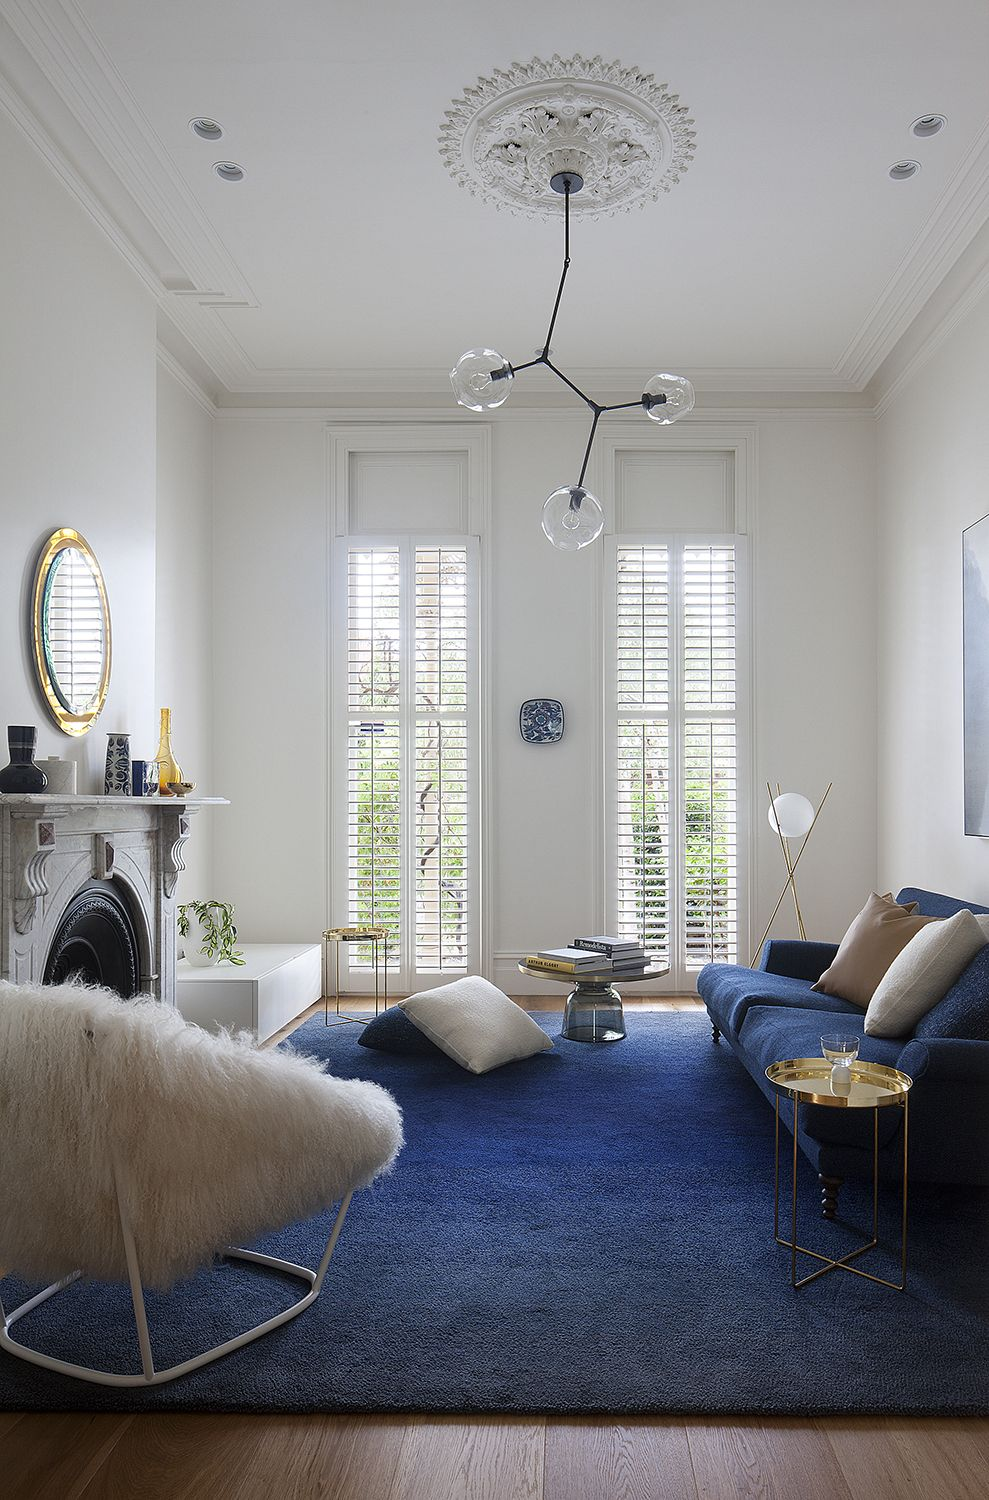 Victorian house colorful interiors for a classy exterior south yarra - South Yarra Terrace House Hecker Guthrie